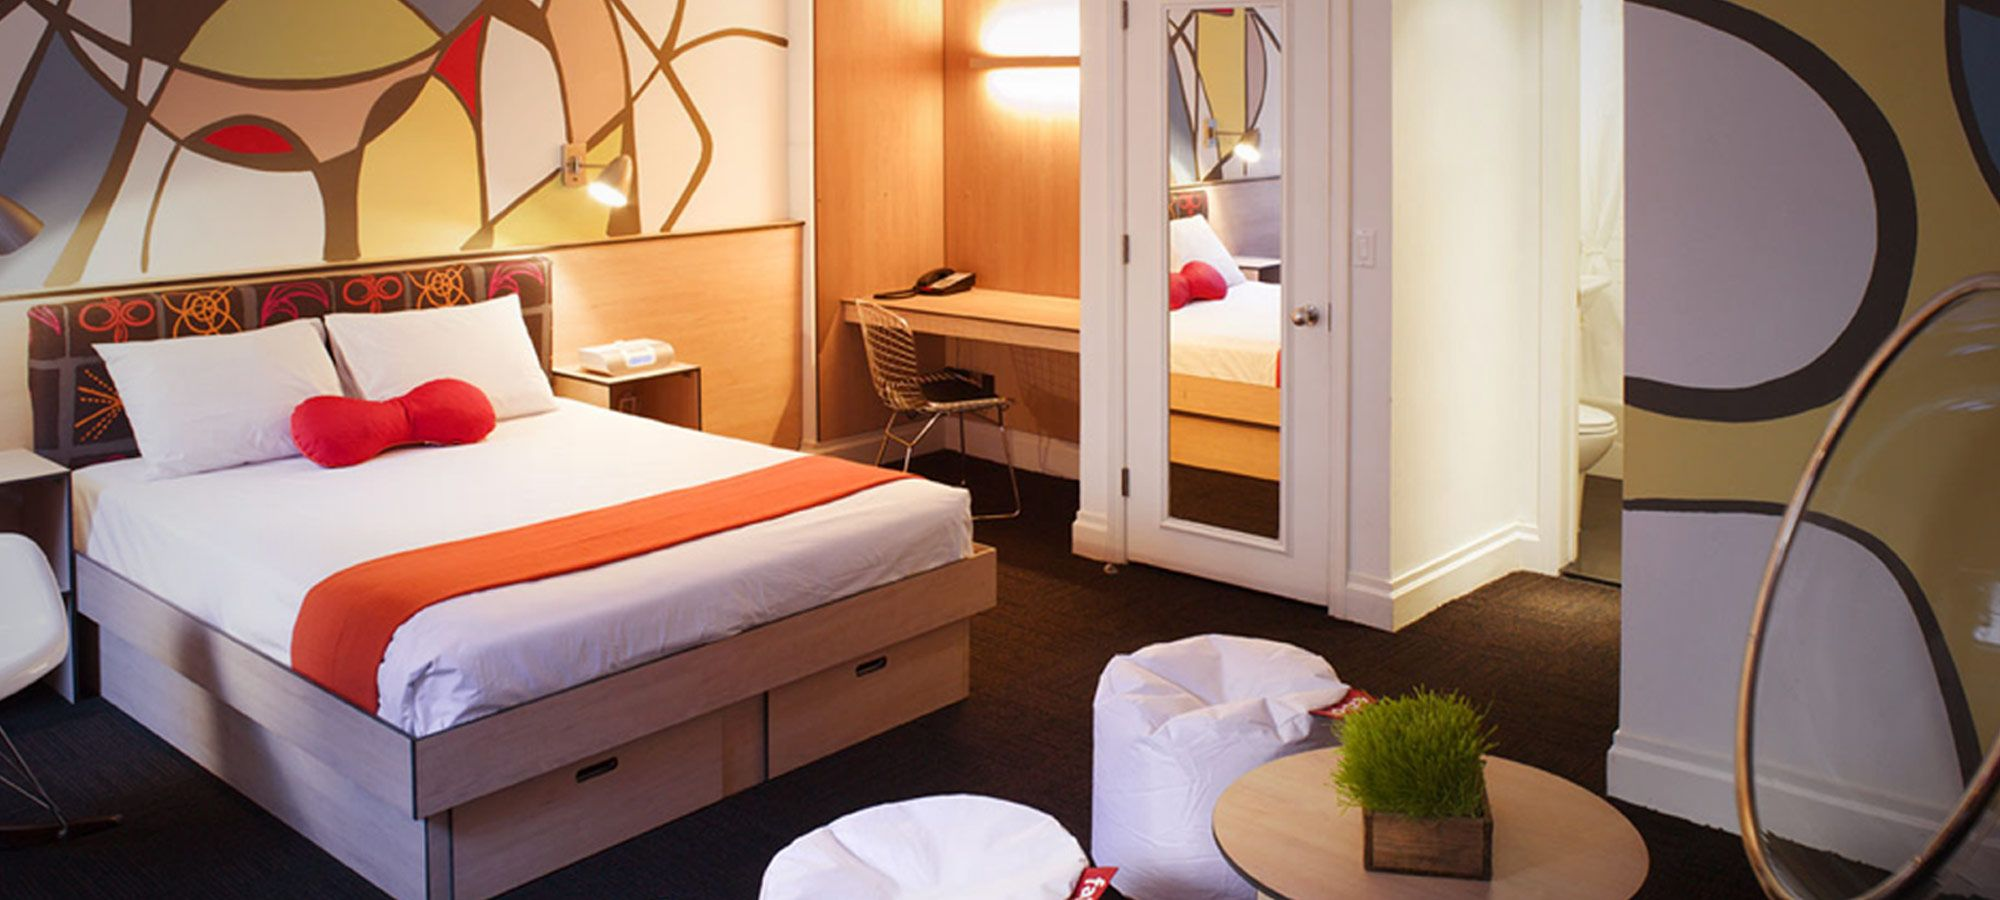 The Pod Hotel Townhouse Studio Extended Stay In New York City For